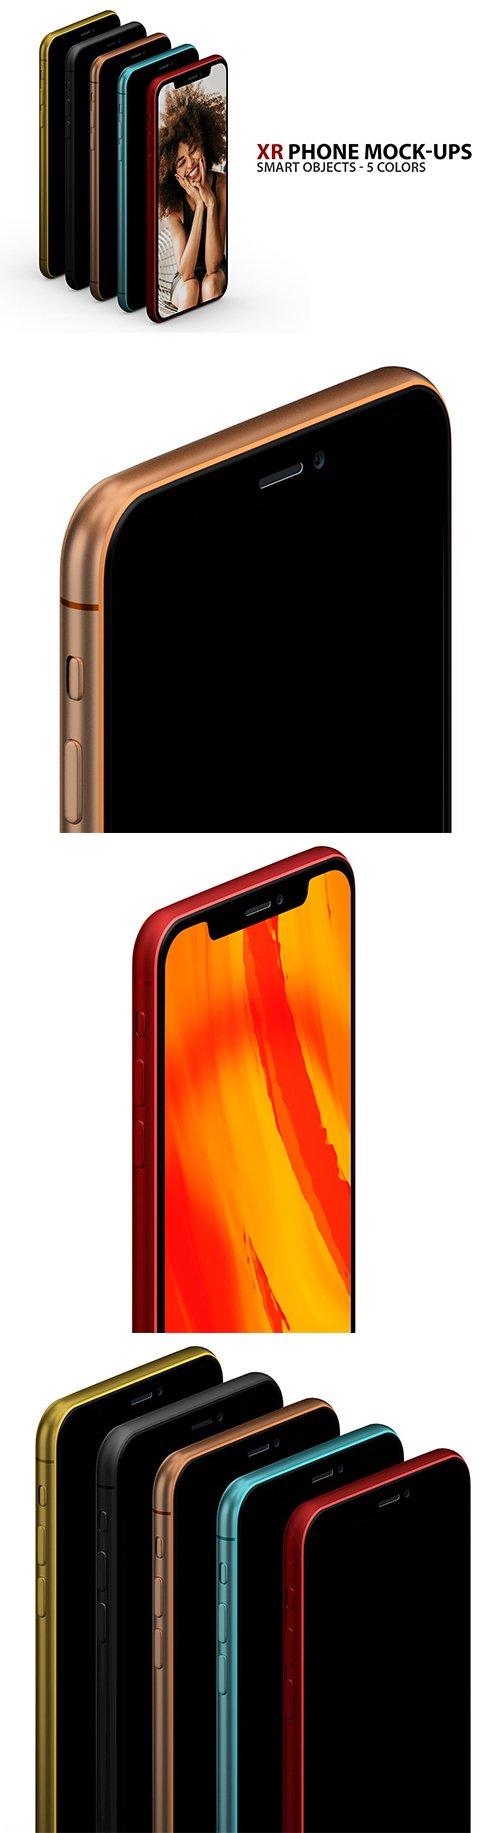 XR Phone Mock-ups with Smart Objects